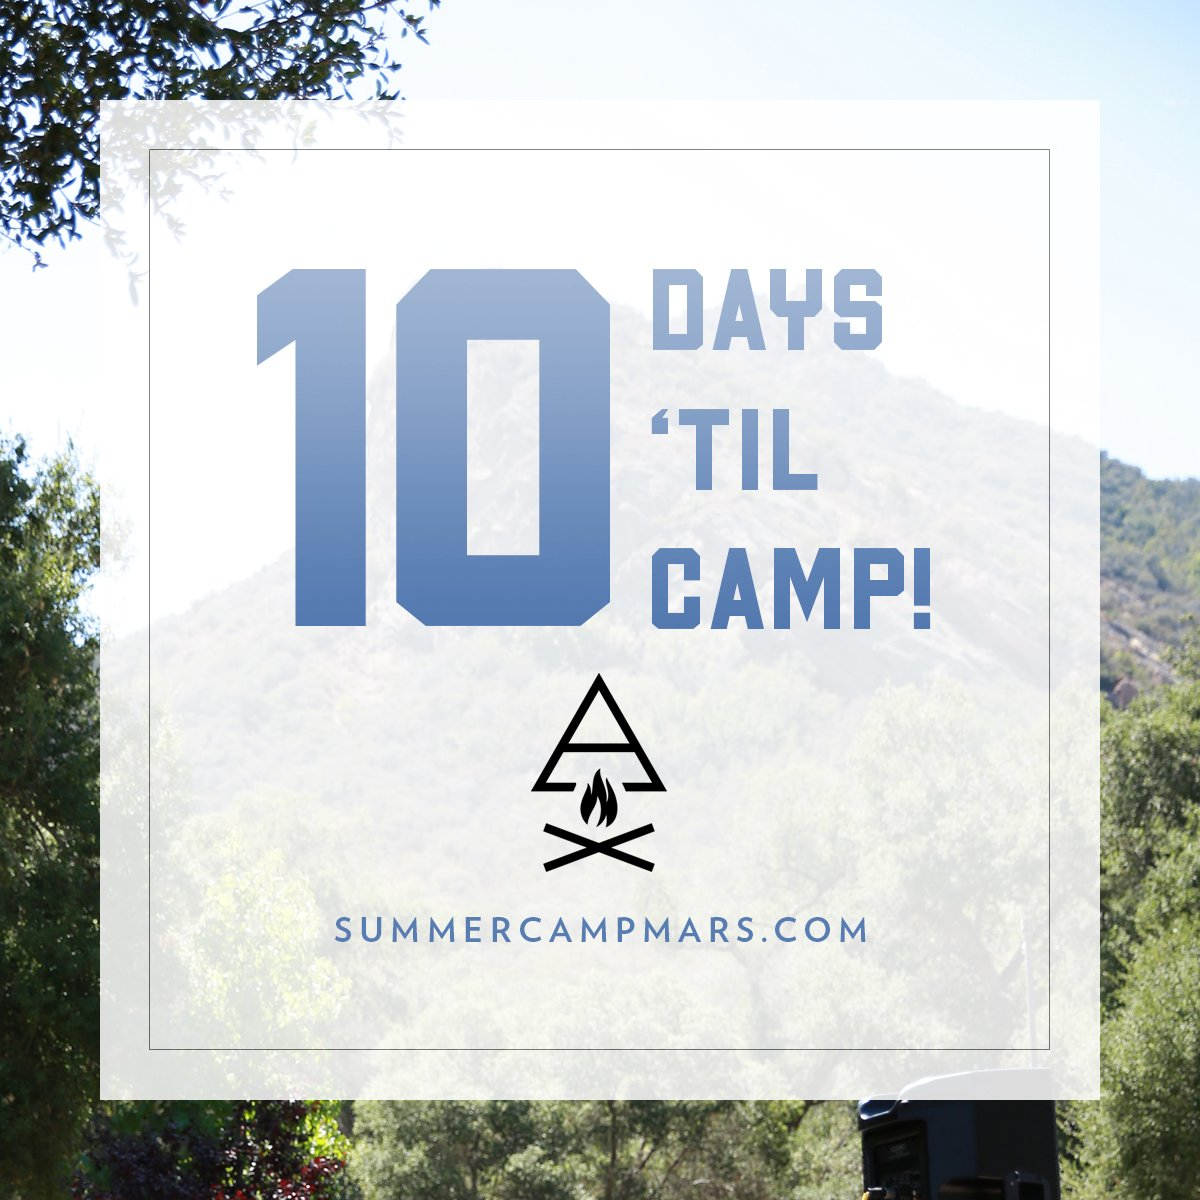 10 DAYS TO GO! COME CHECK OUT OUR MUSIC FESTIVAL: https://t.co/uhdPT2dSE0 #CampMars https://t.co/NeY6HANFrj